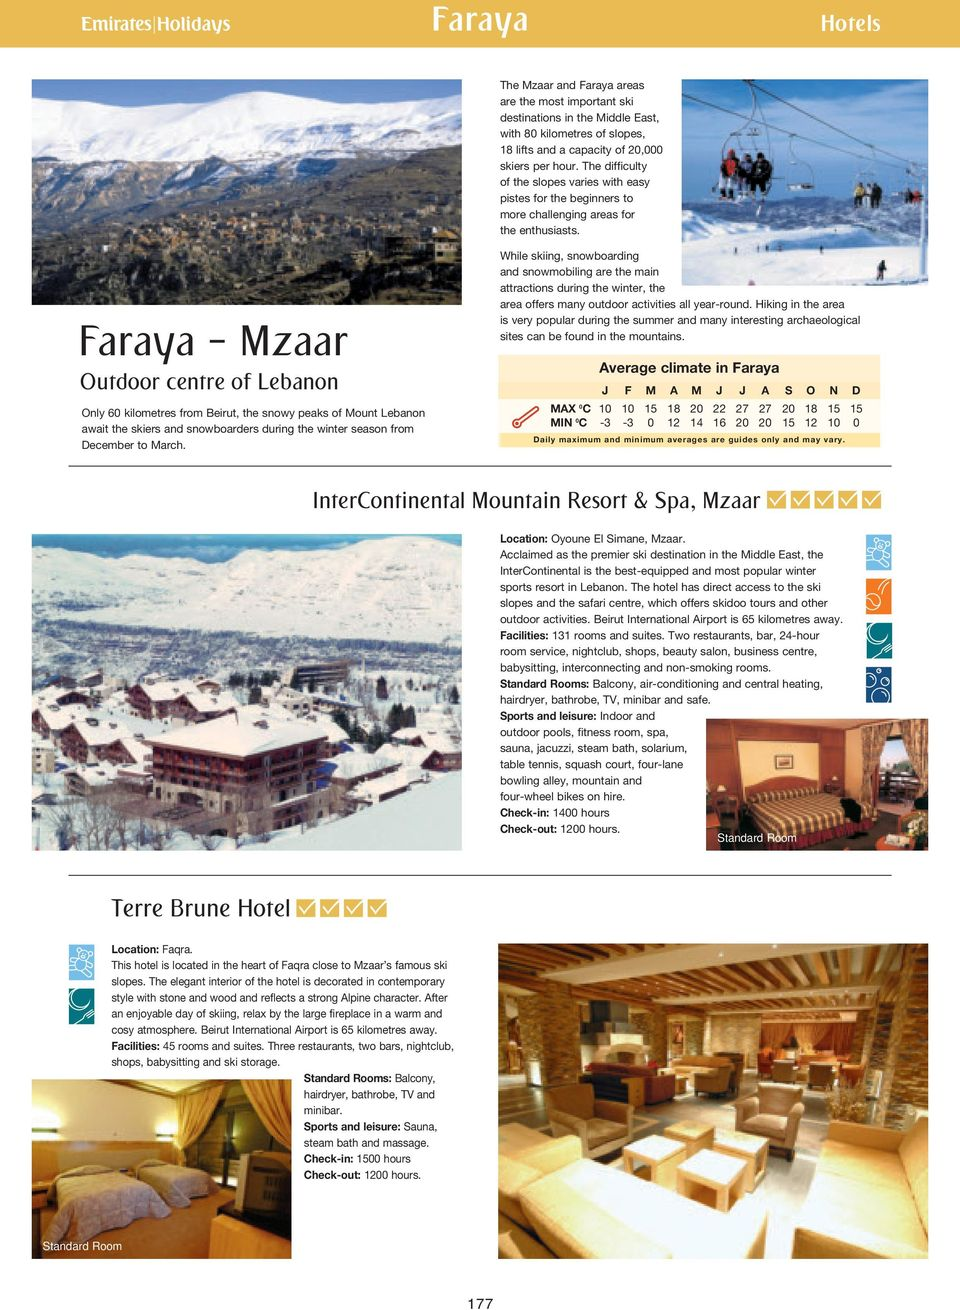 Faraya Mzaar Outdoor centre of Lebanon Only 60 kilometres from Beirut, the snowy peaks of Mount Lebanon await the skiers and snowboarders during the winter season from December to March.